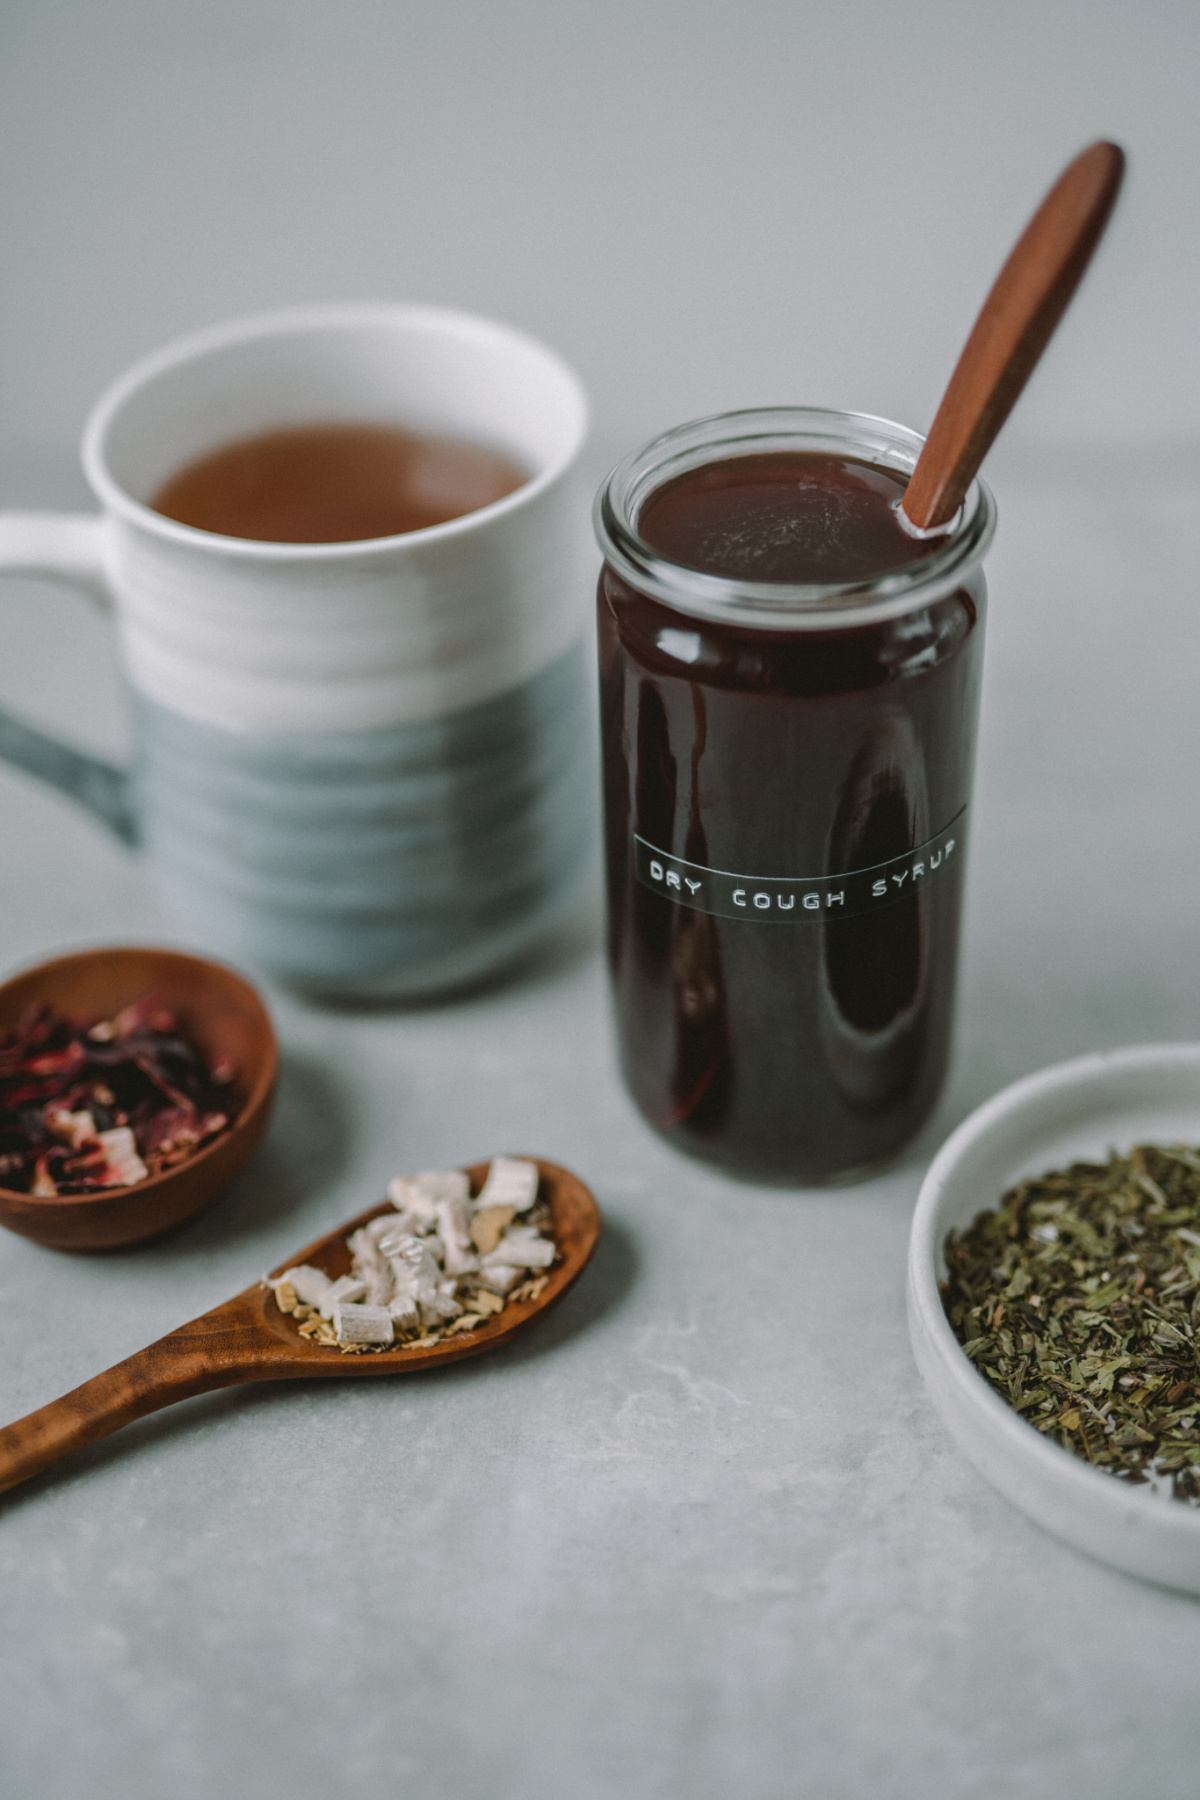 dry cough syrup recipe in a jar with dried herbs on table